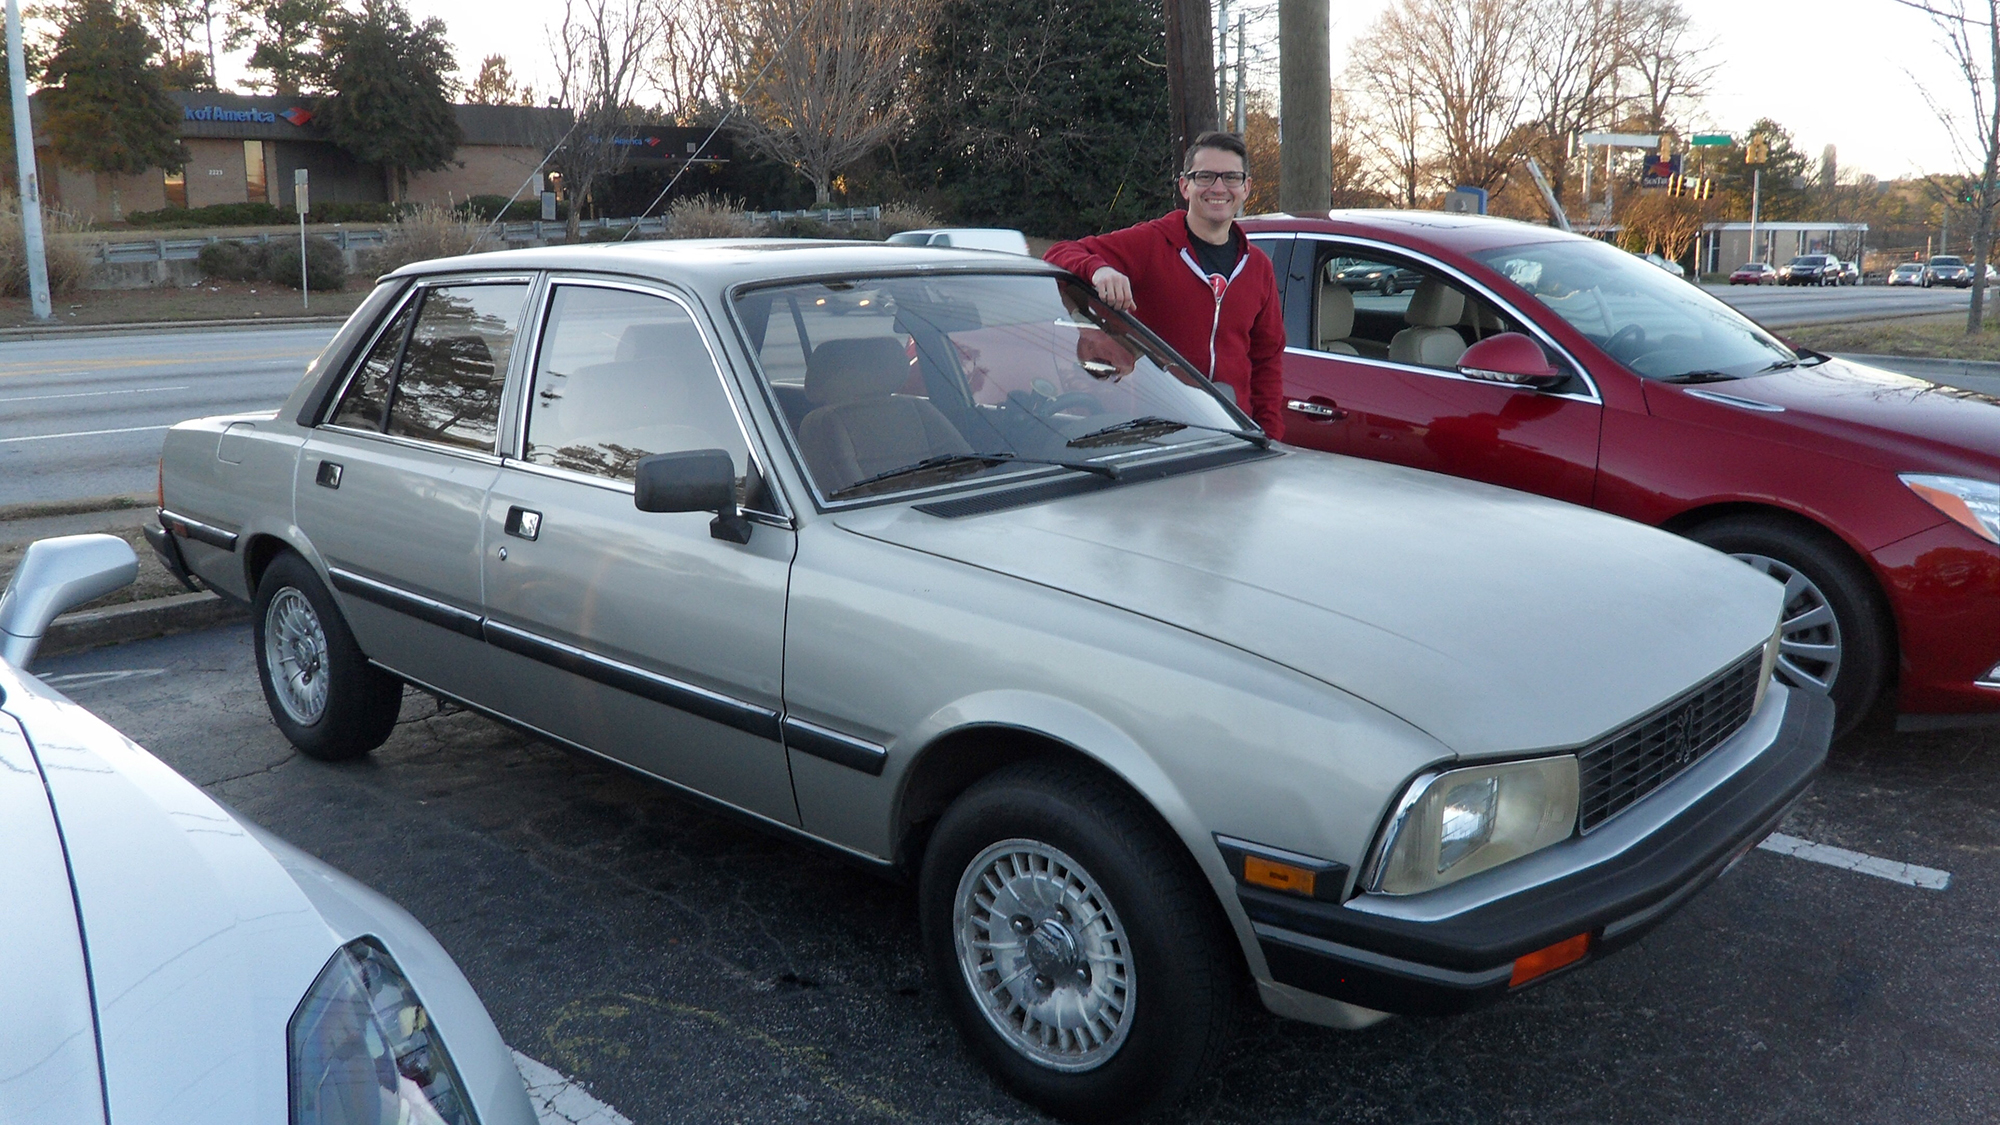 Me with the Peugeot 505 S